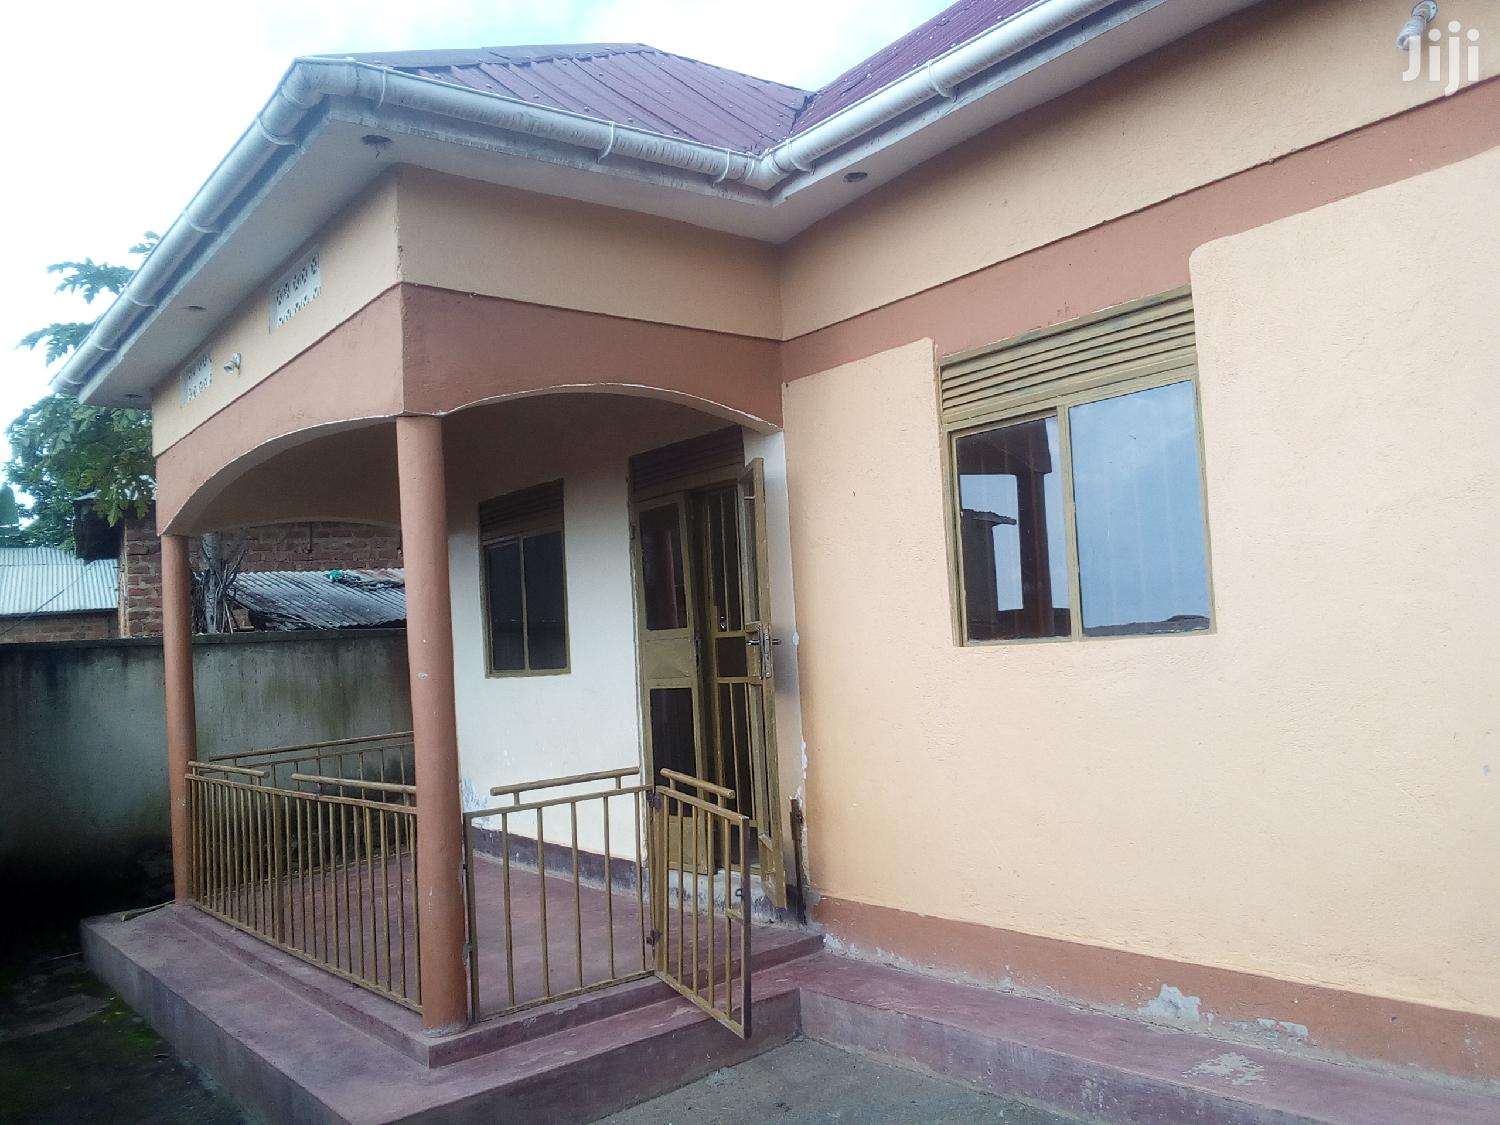 Two Bedroom House In Nakigala For Sale